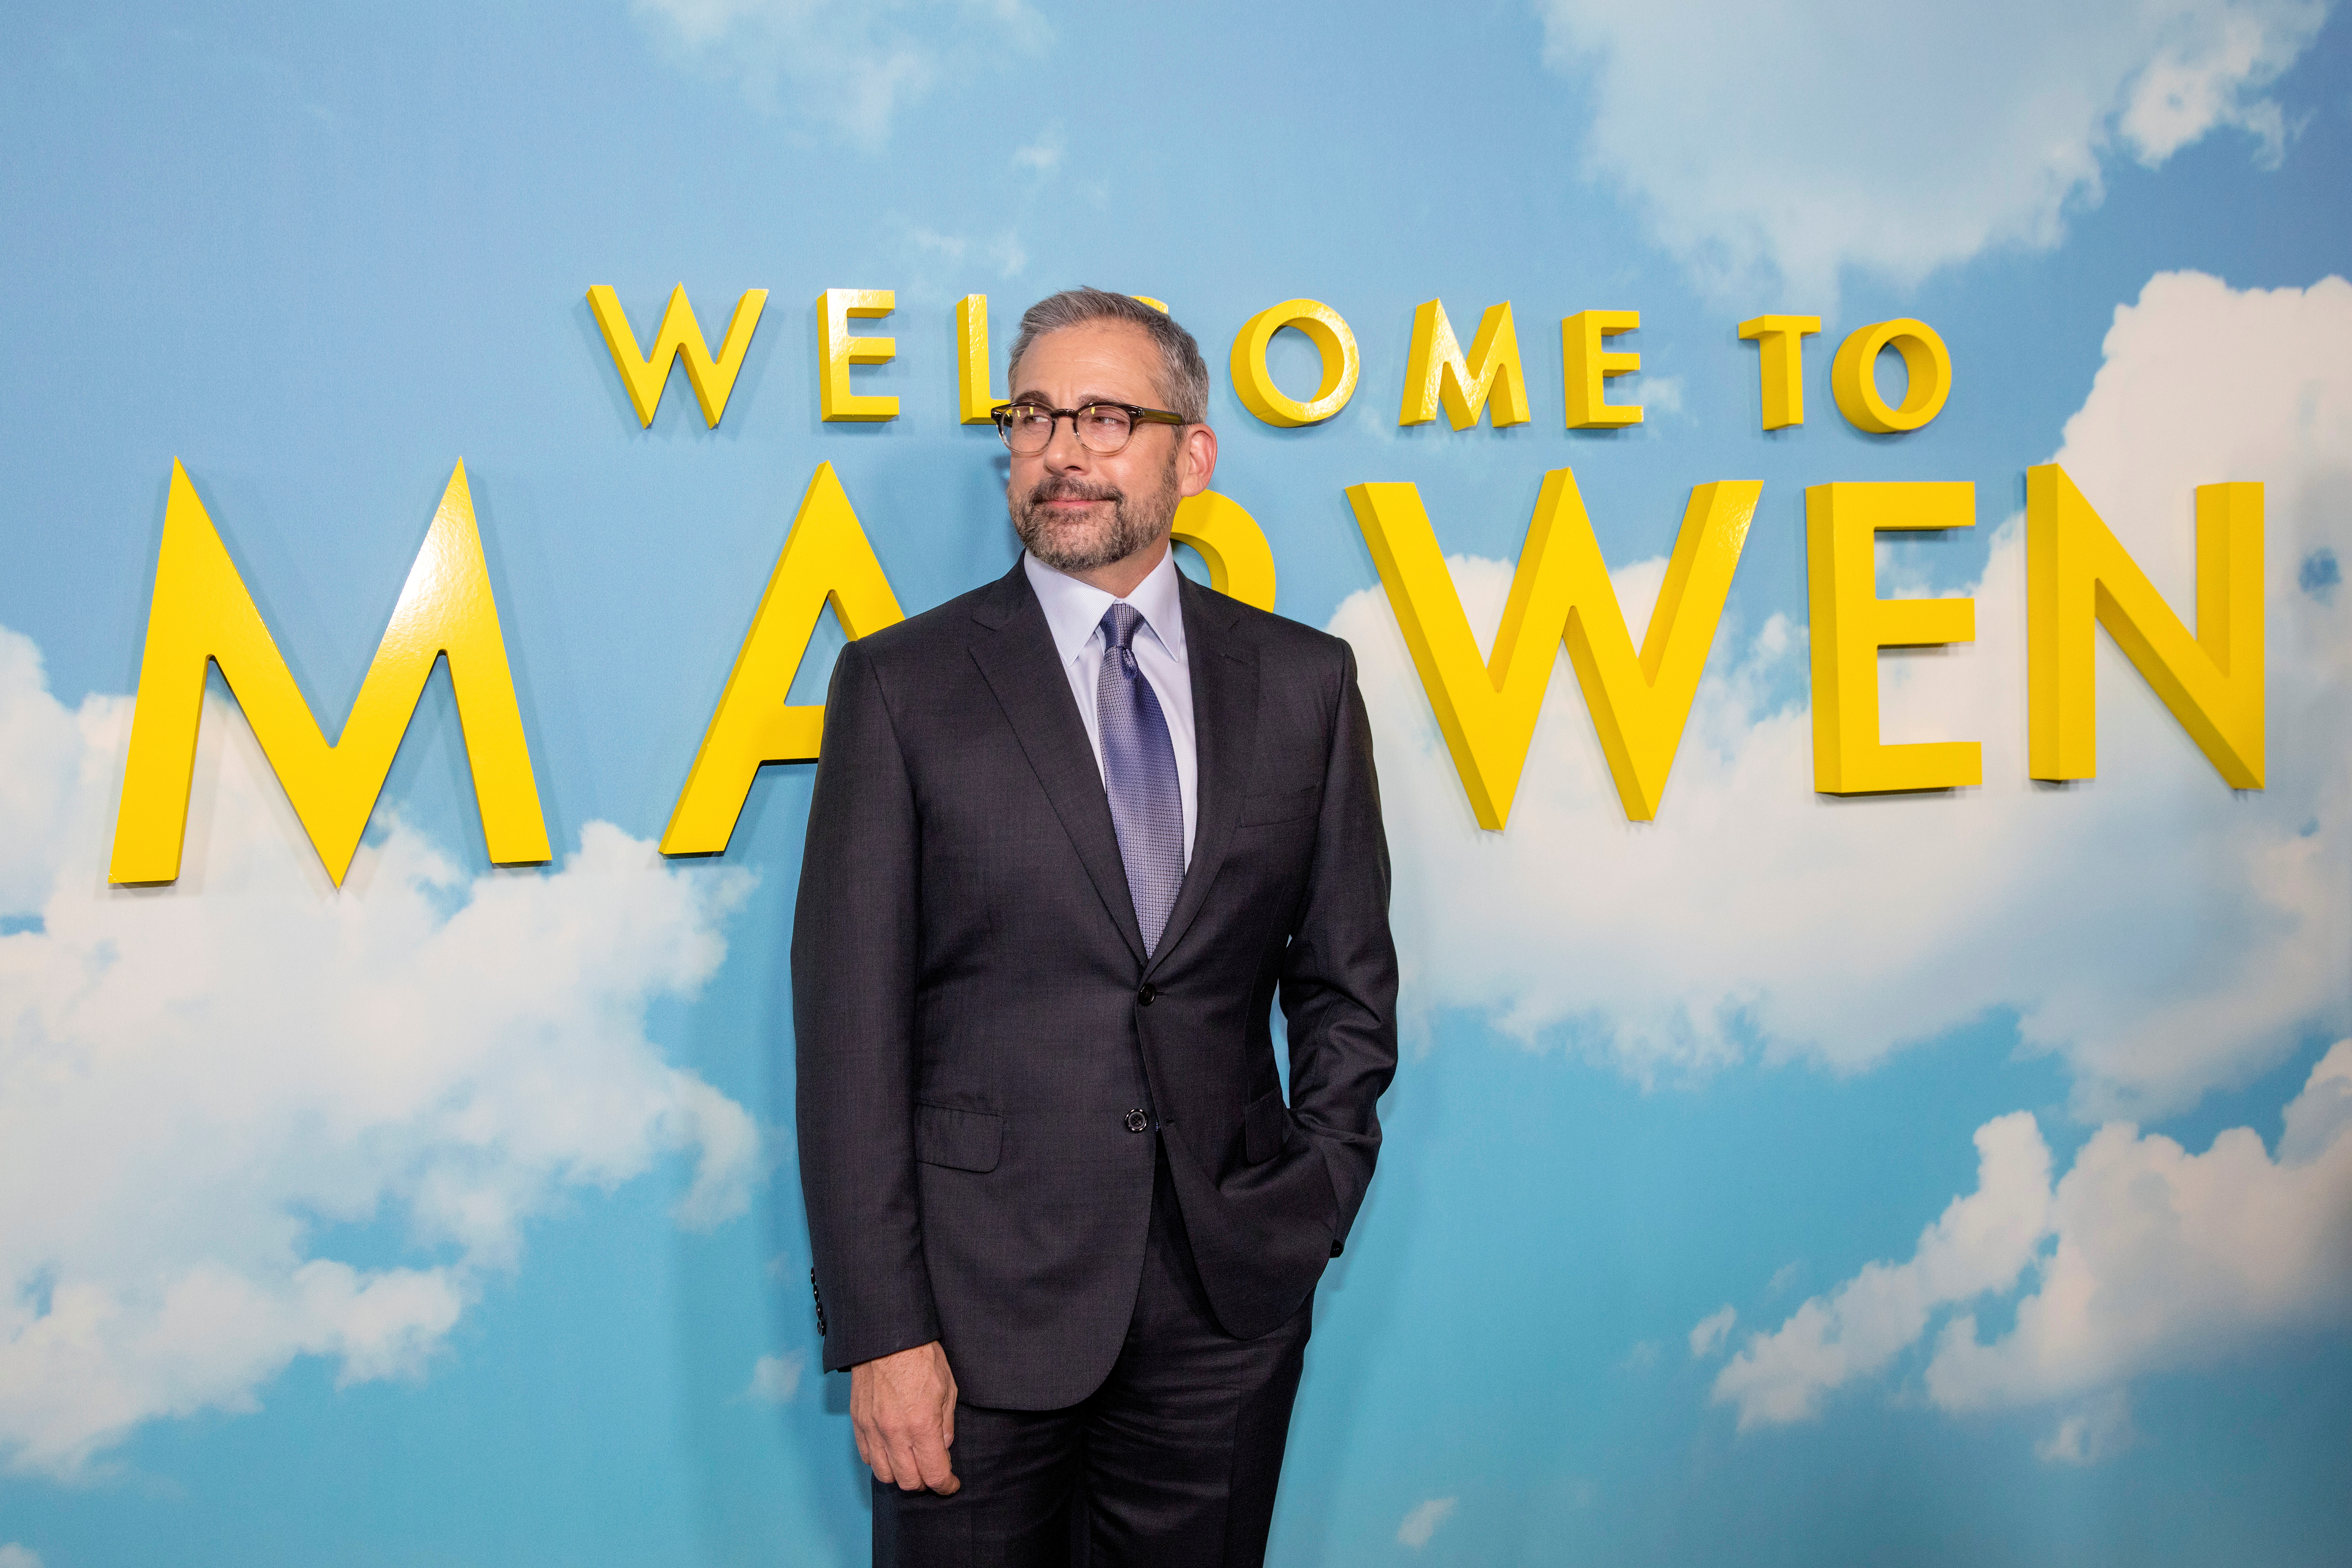 Steve Carell tells tale of hope from trauma in 'Welcome to Marwen'